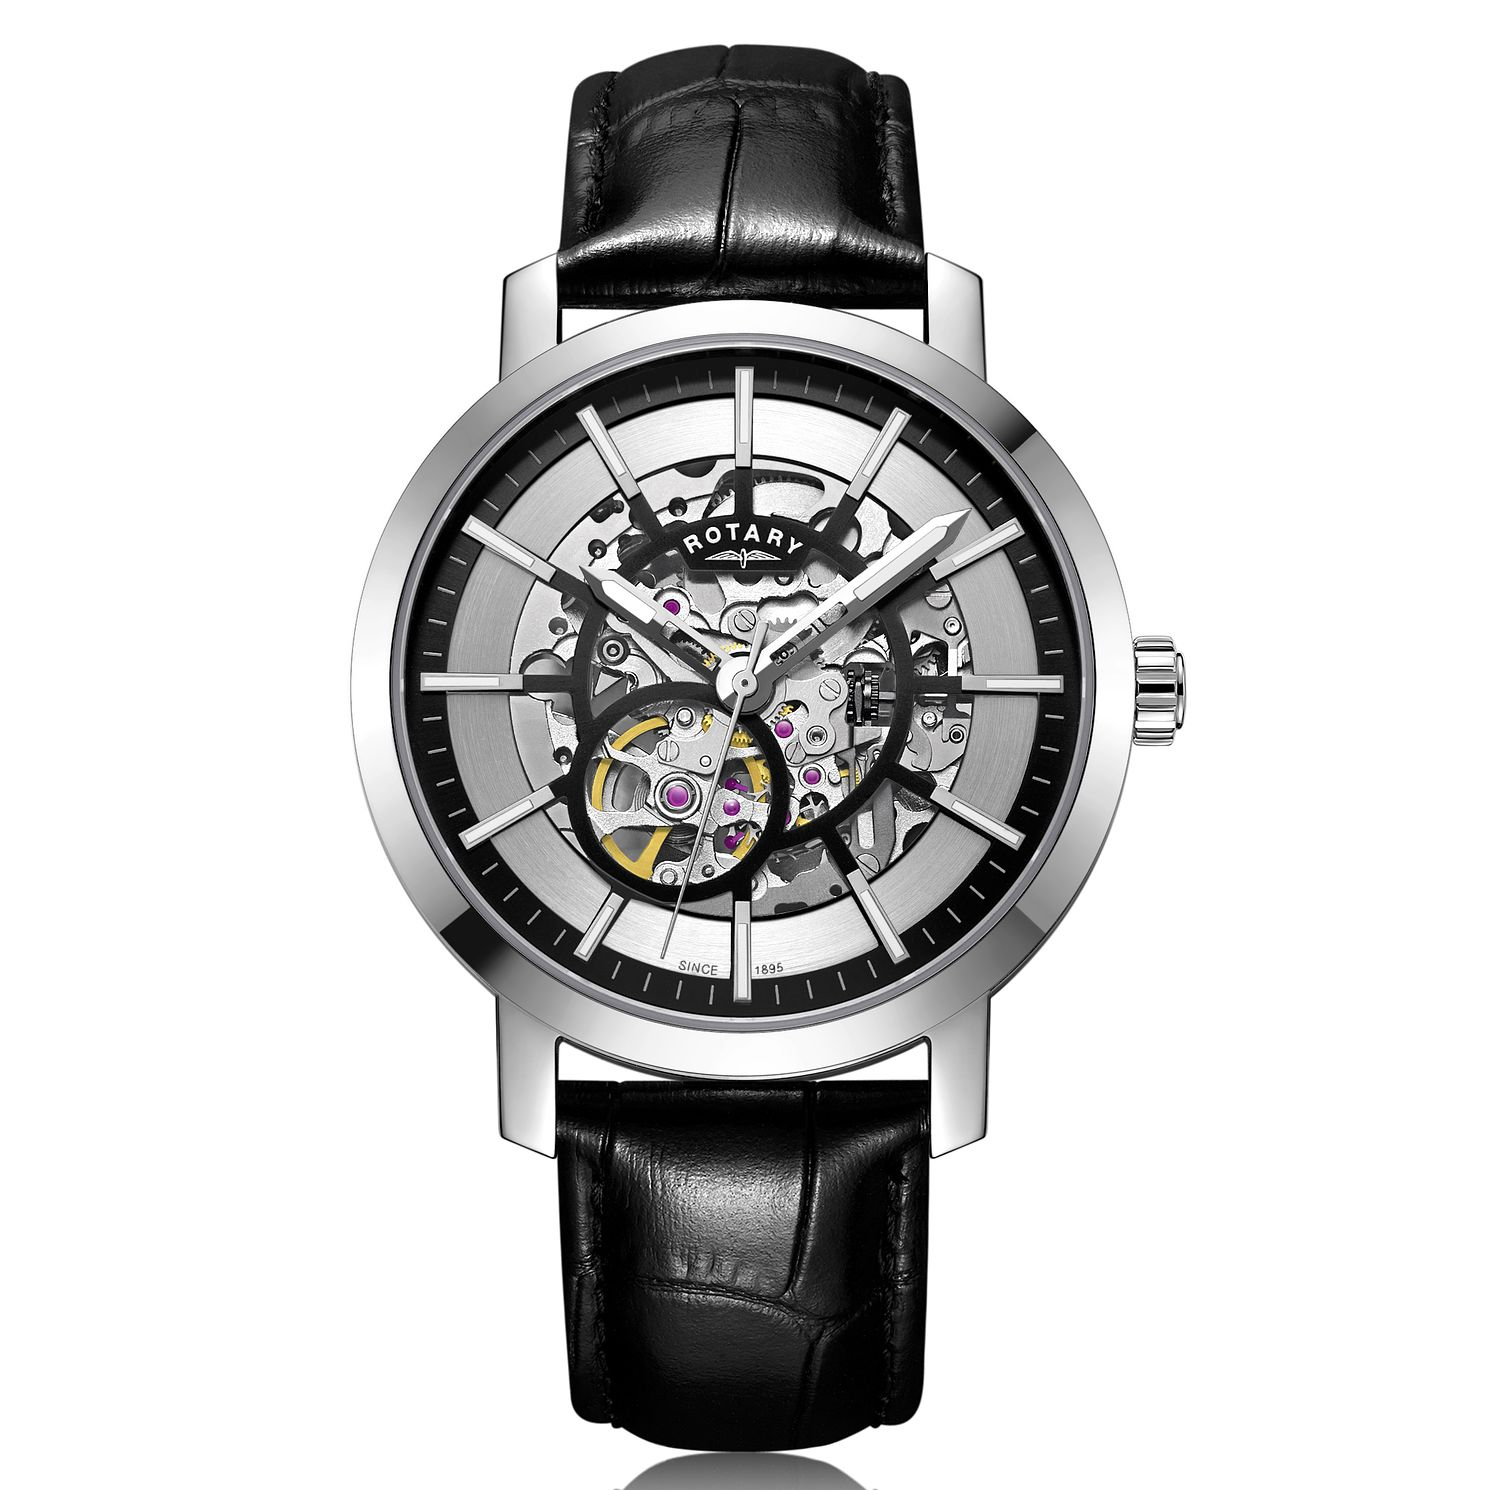 Rotary Greenwich G2 Men's Black Leather Strap Watch - Product number 2902311